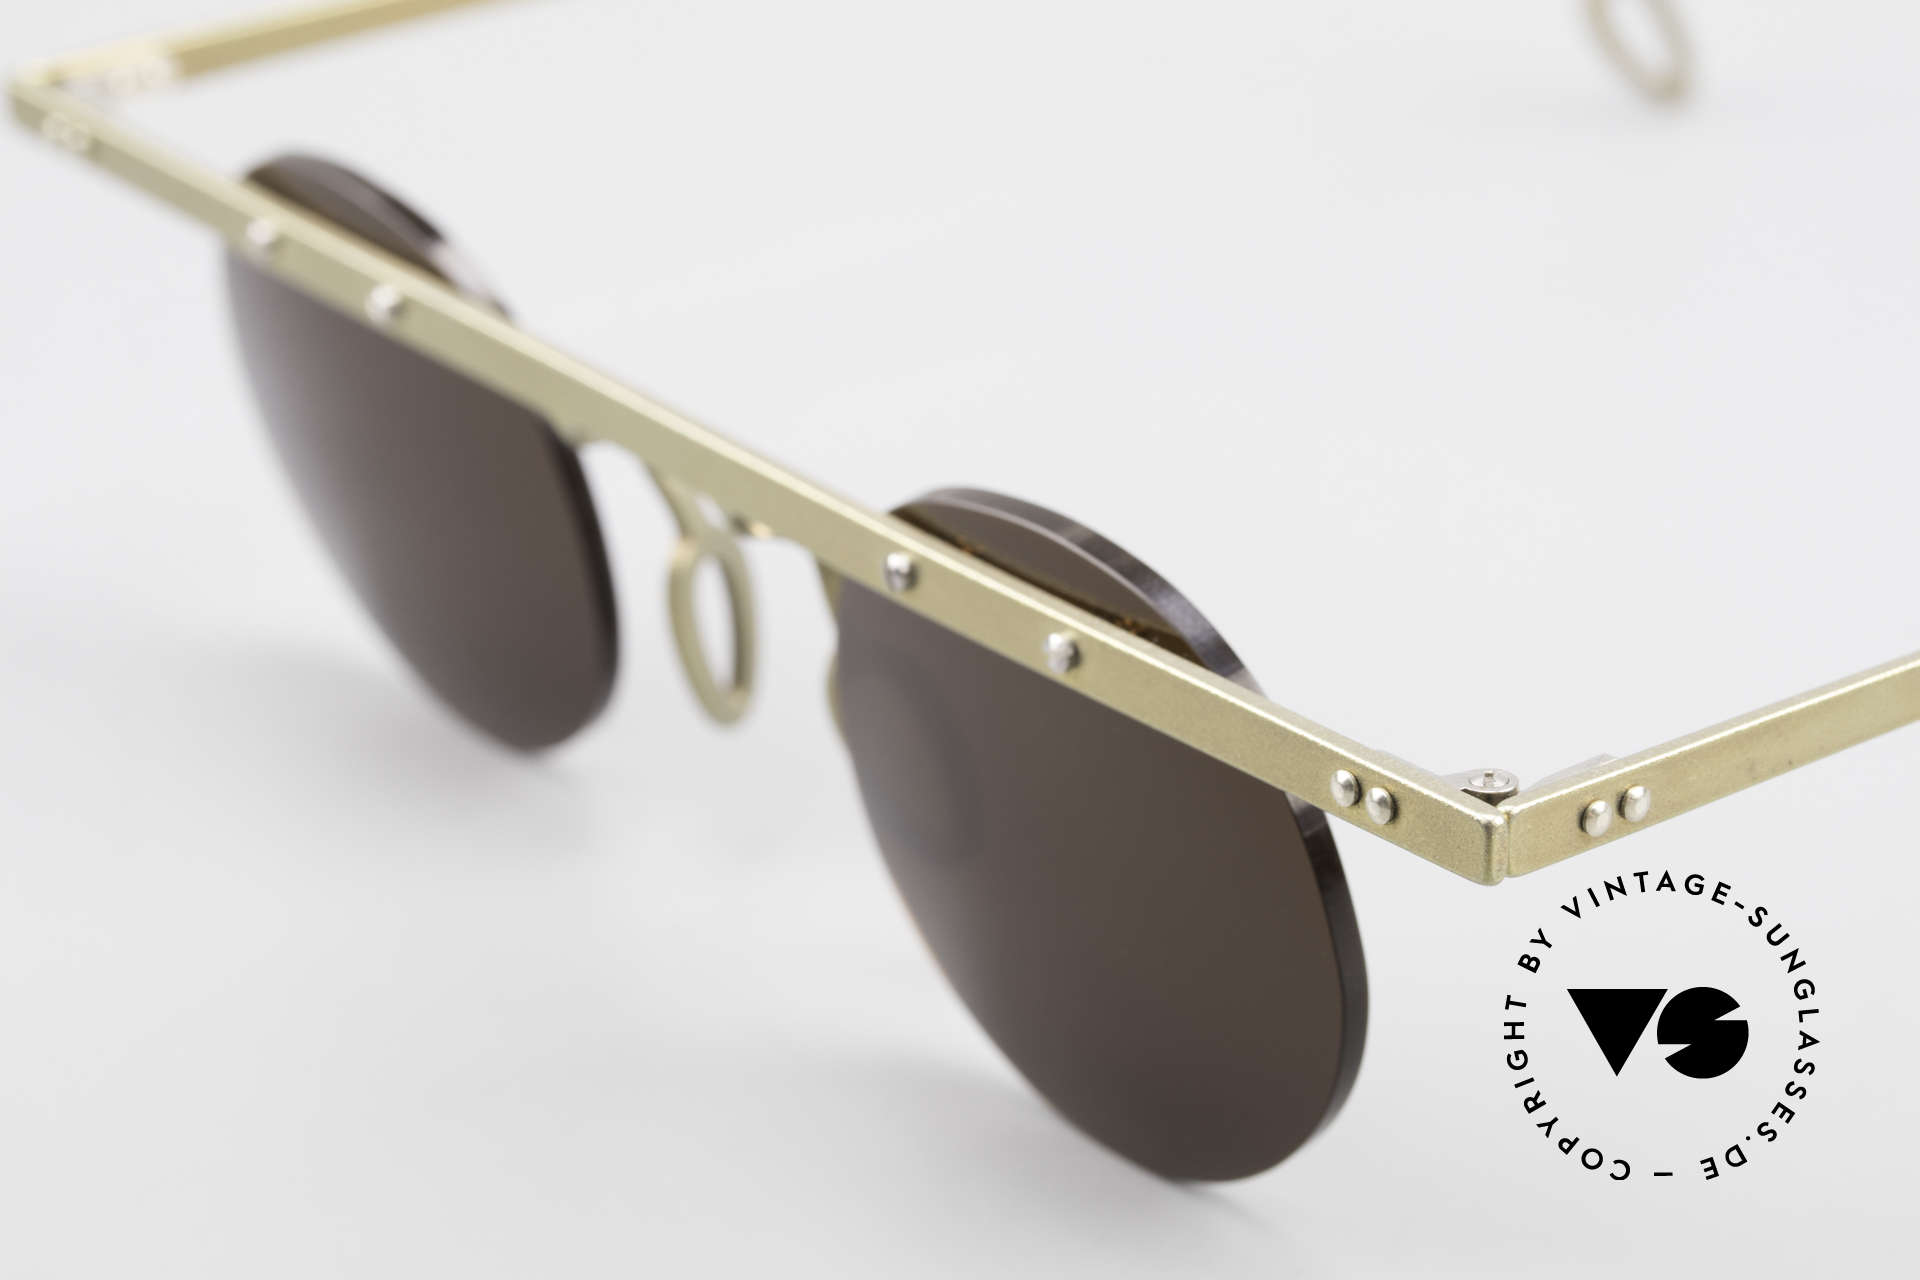 Theo Belgium Tita VII 10 Crazy Titanium Sunglasses 90s, the round sun lenses are fixed with screws at the frame, Made for Men and Women